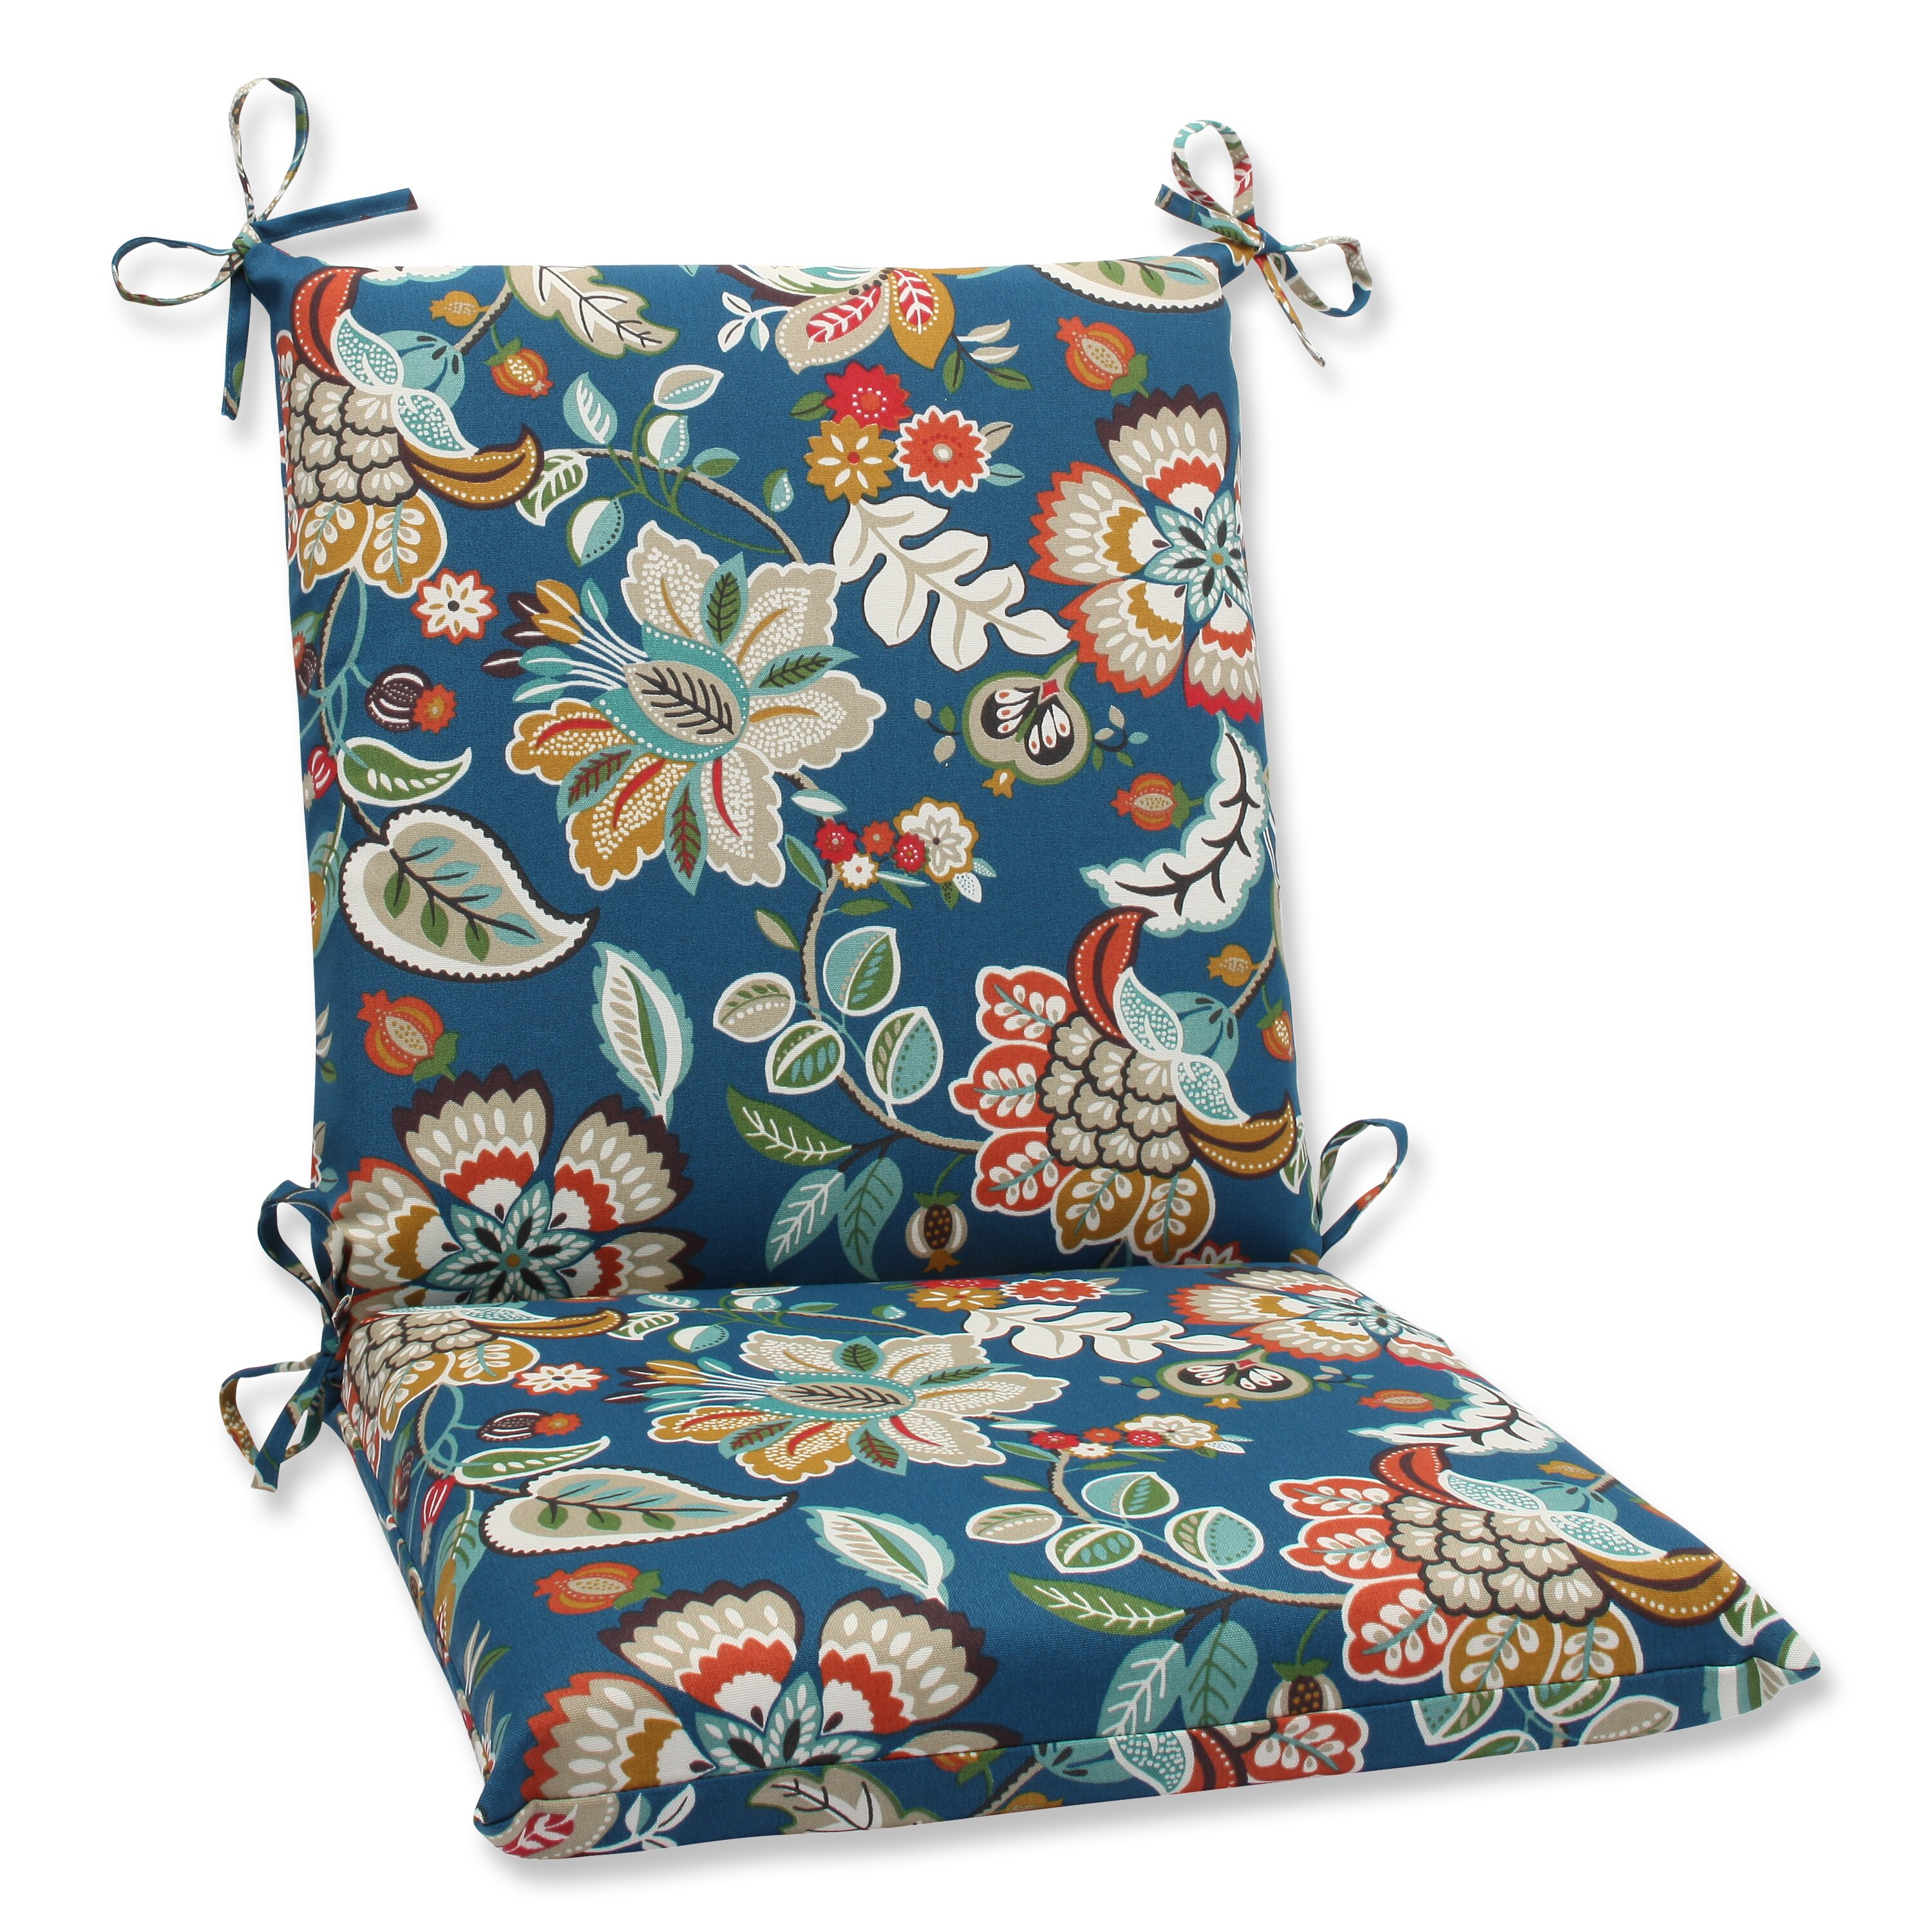 Pillow Perfect Telfair Peacock Outdoor Lounge Chair